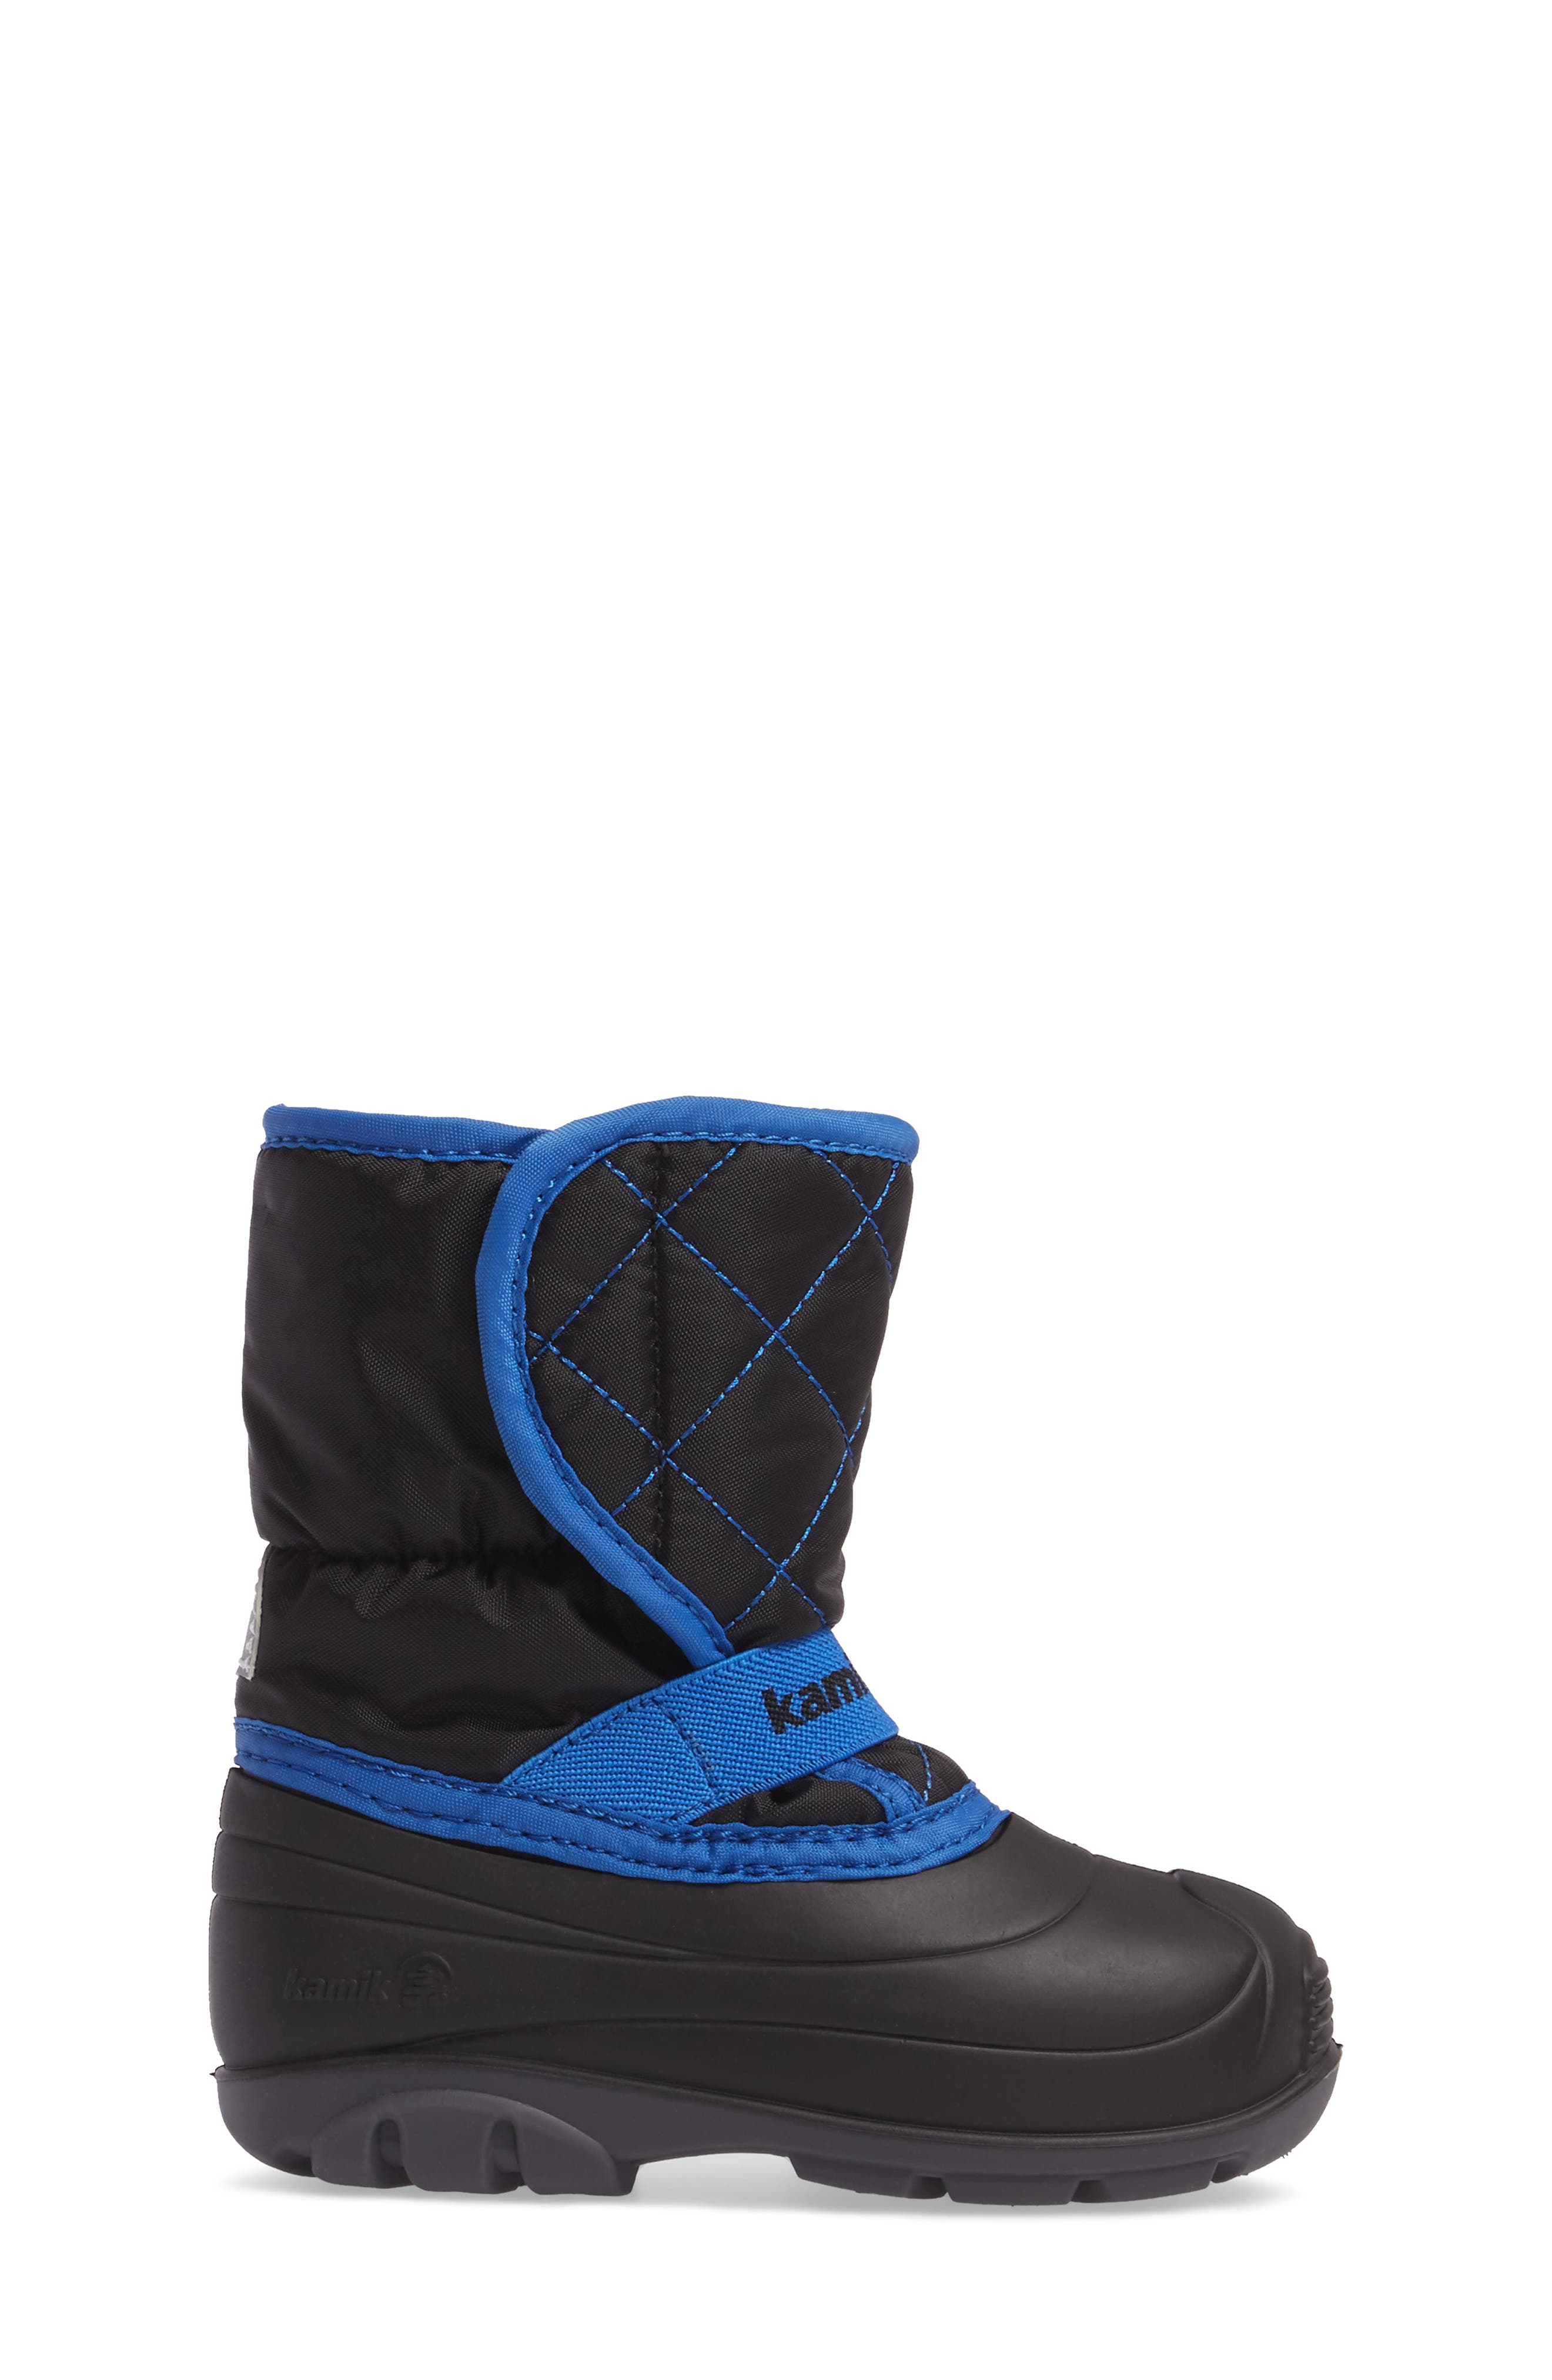 Pika2 Faux Fur Insulated Waterproof Snow Boot,                             Alternate thumbnail 3, color,                             010